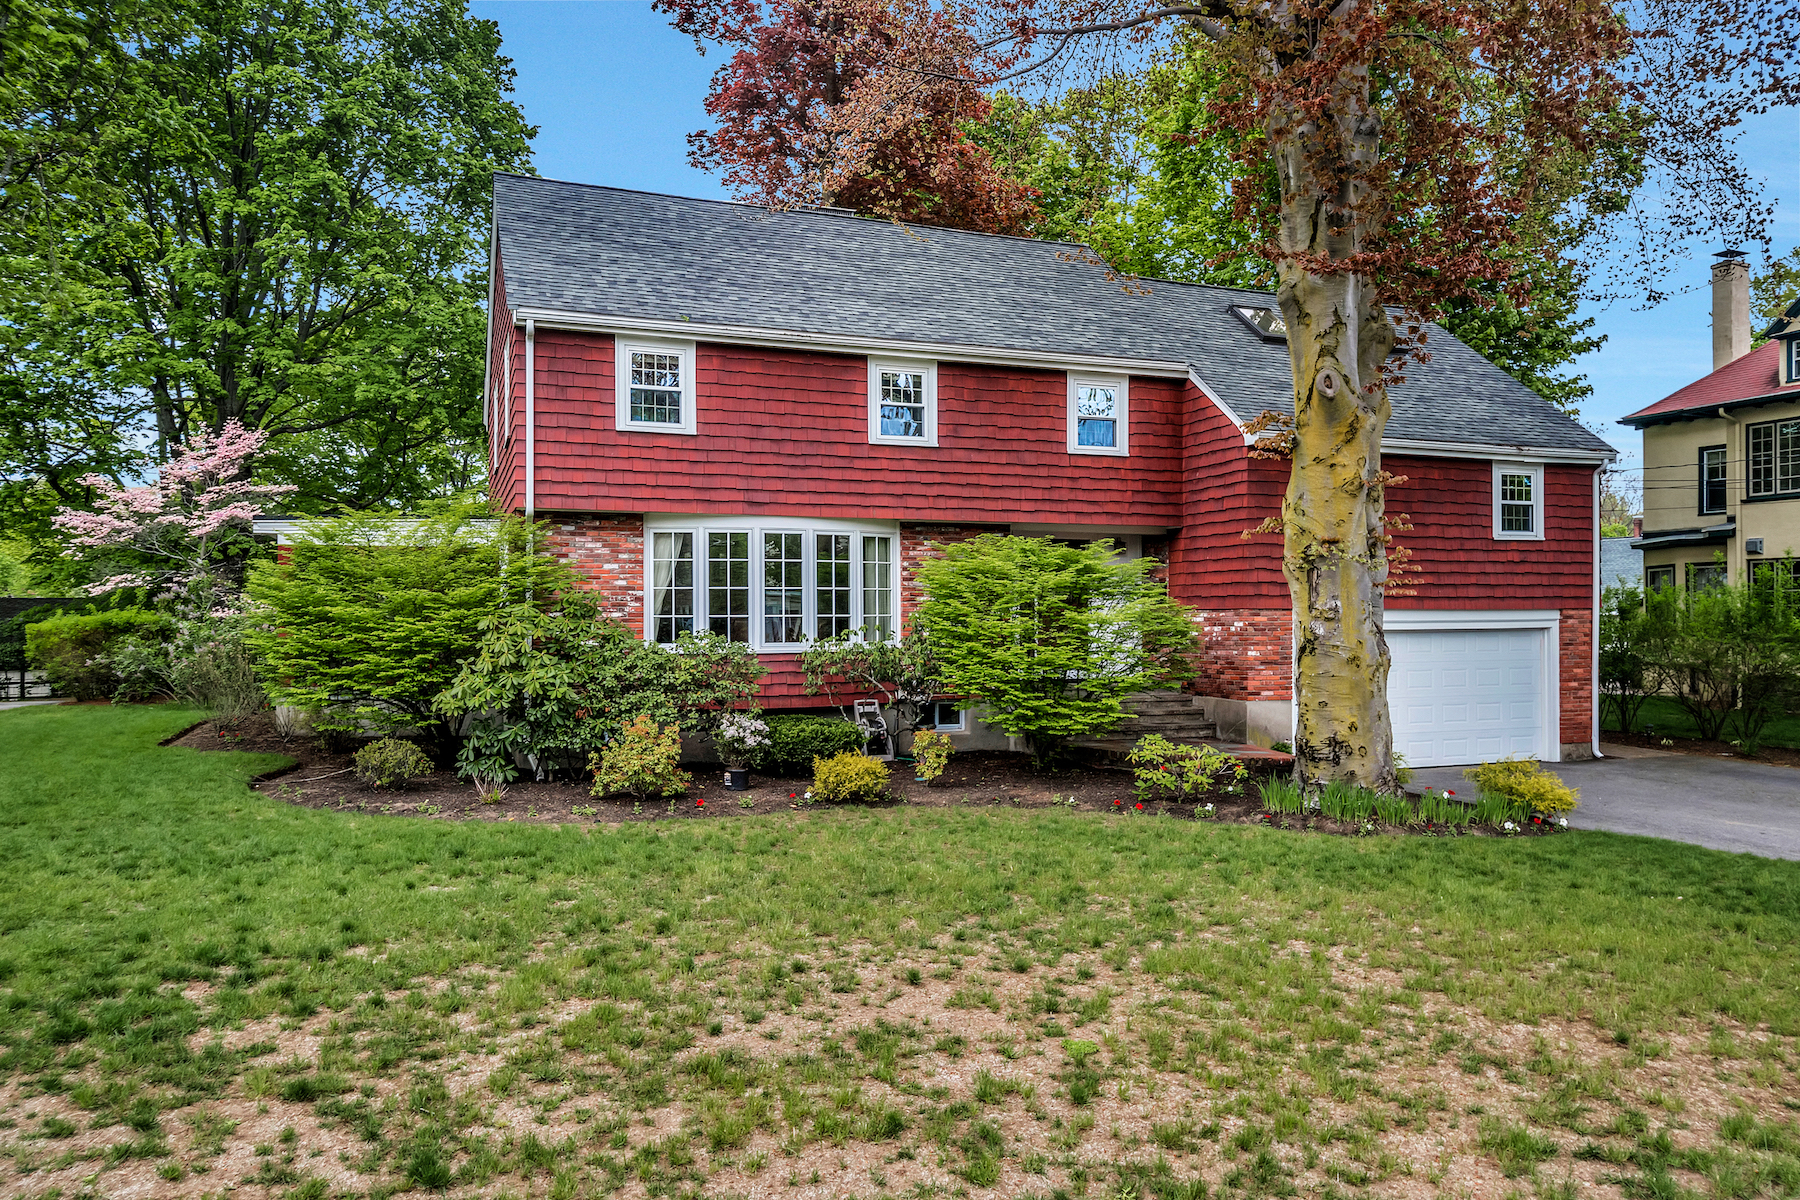 Single Family Home for Sale at Beautiful Colonial in sought after Flats location 51 Wildwood Street Winchester, Massachusetts 01890 United States